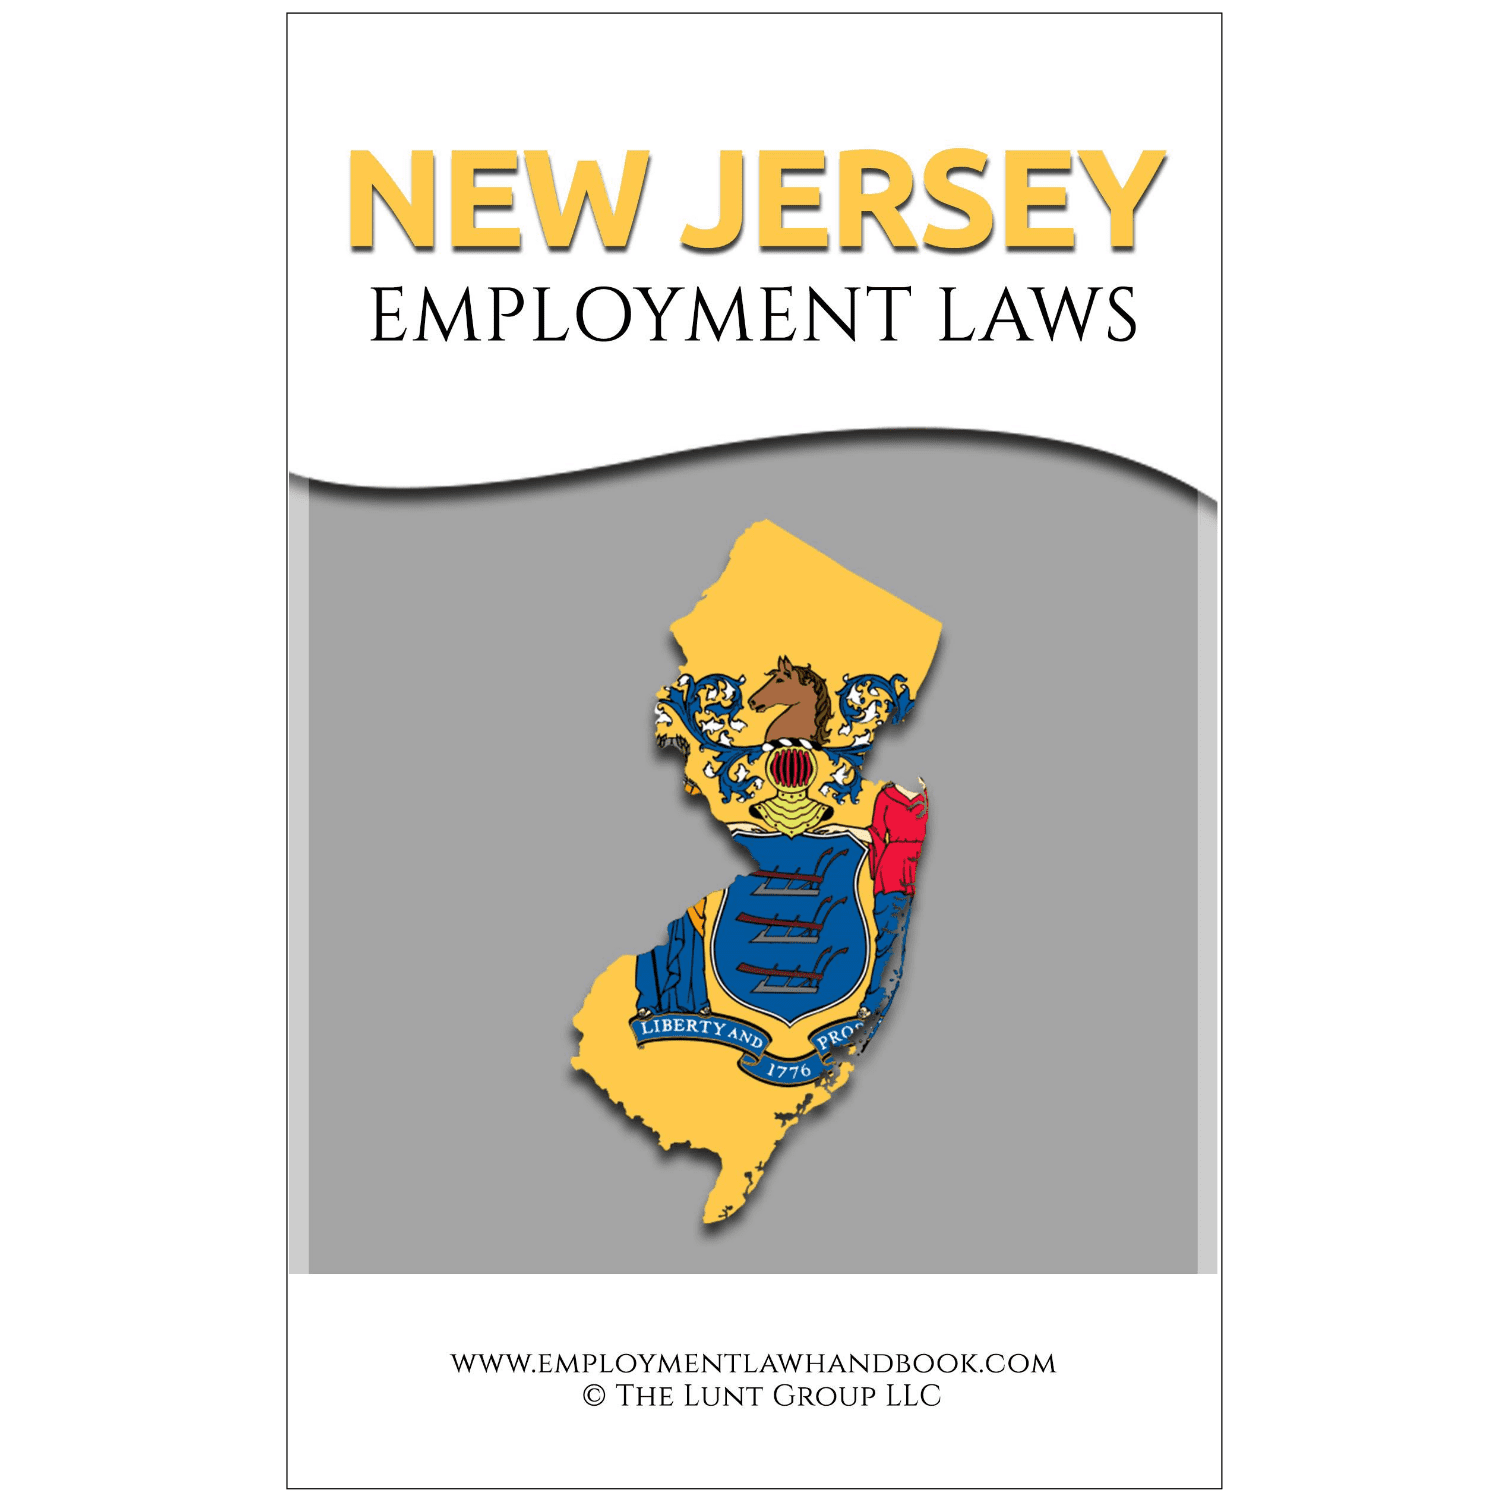 New_Jersey Employment Laws_sq